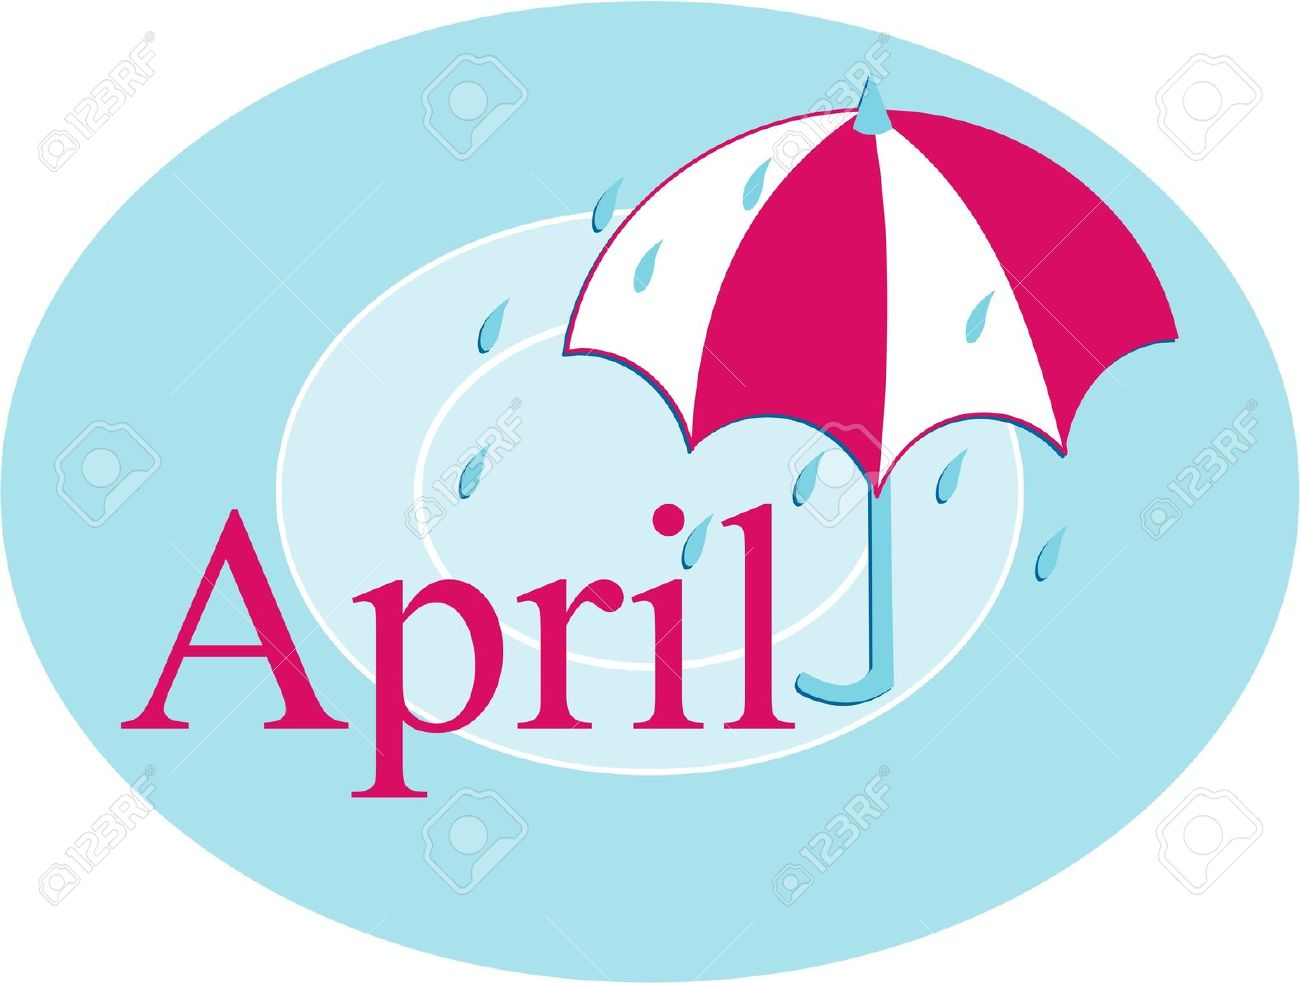 April 2014 calendar clipart svg transparent download April showers calendar clipart - ClipartFest svg transparent download